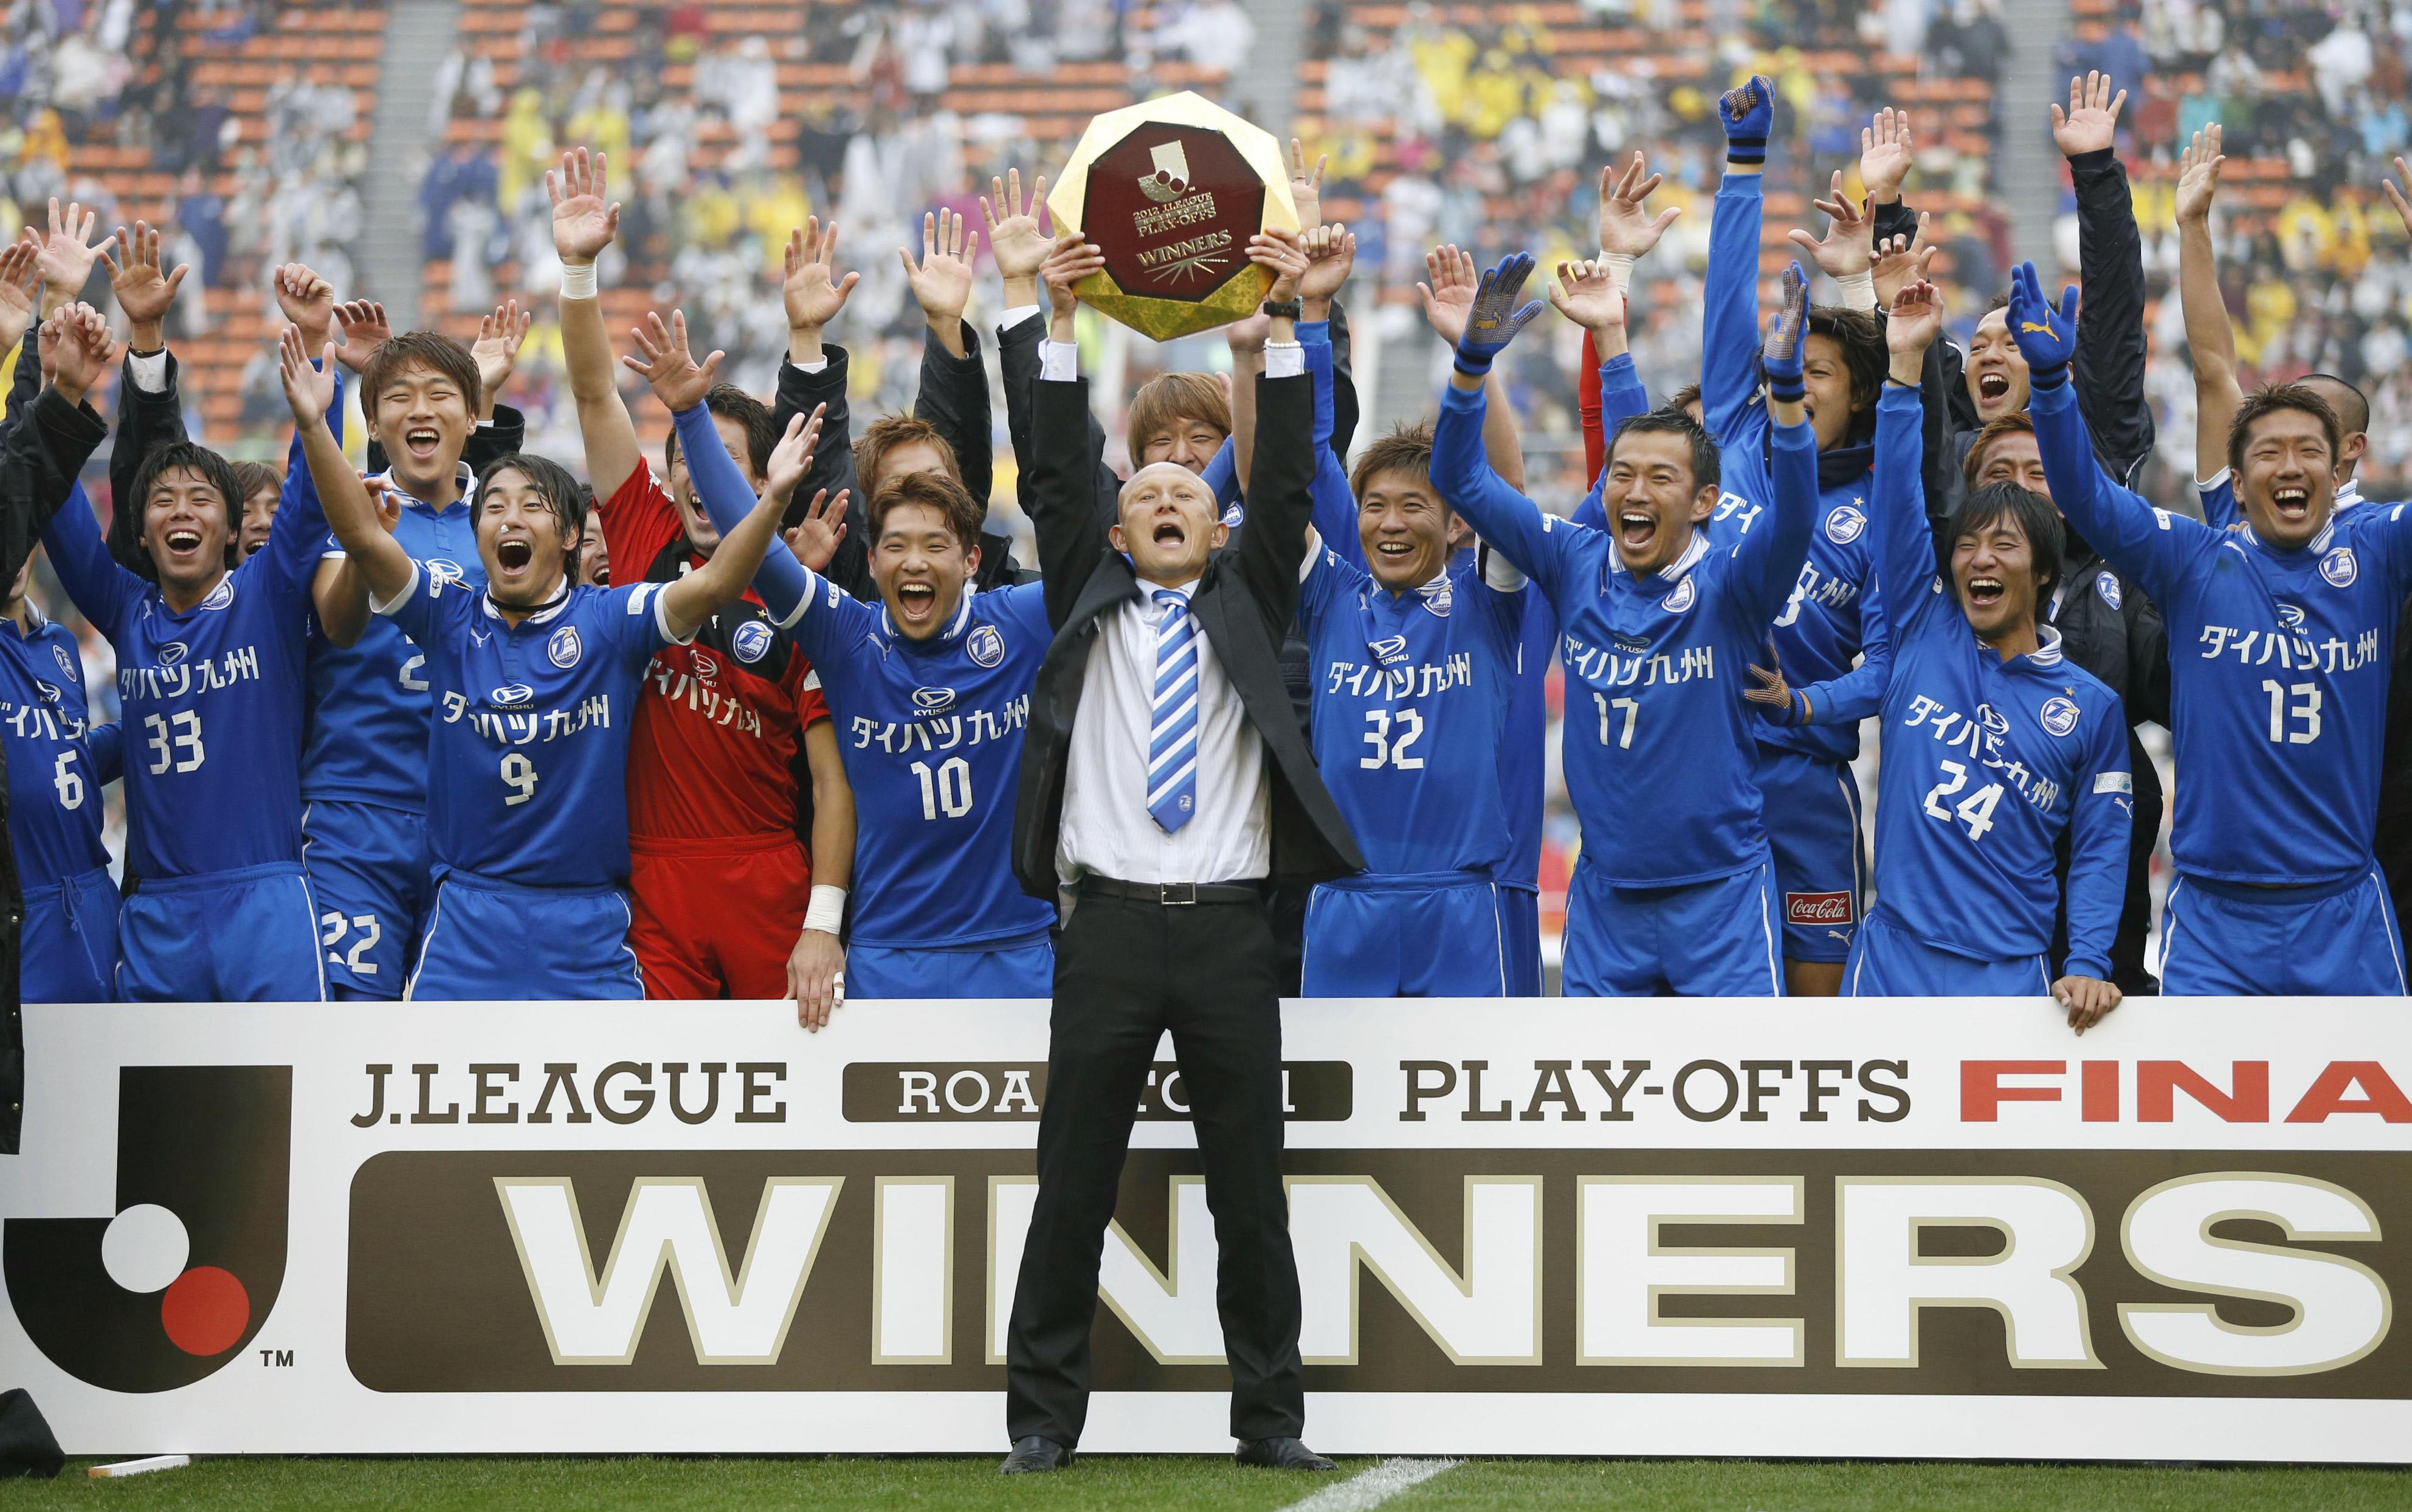 Moving on up: Oita Trinita manager Kazuaki Tasaka celebrates with his players after their 1-0 win over JEF United Chiba in the promotion playoffs final on Thursday at National Stadium. | KYODO